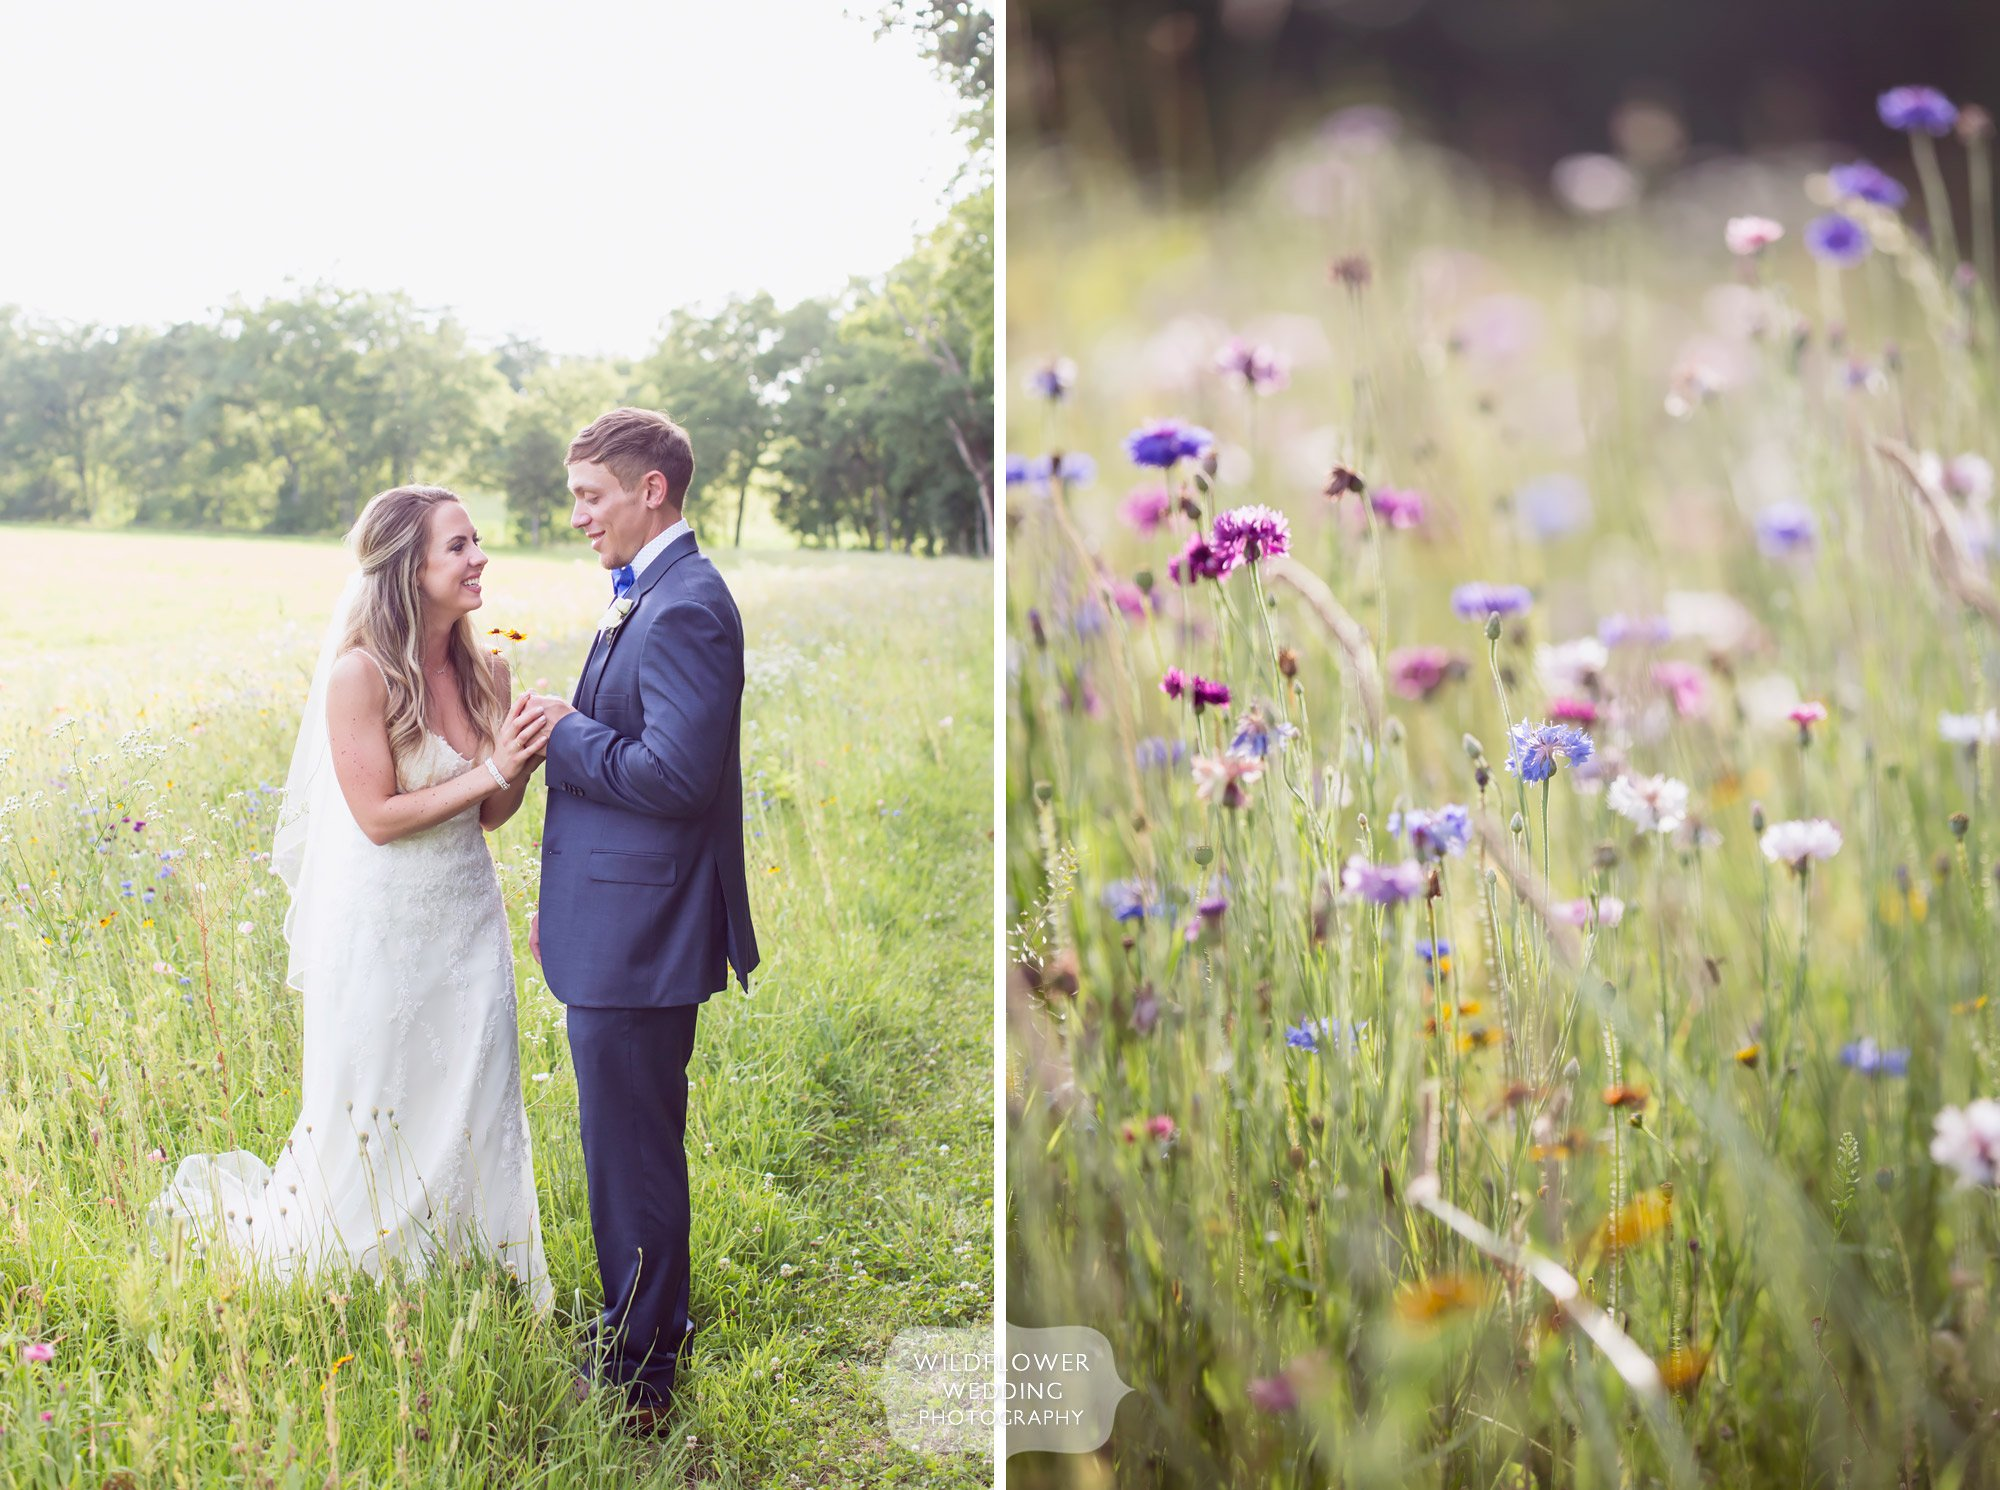 Loved these photos of the bride and groom standing in a field of wildflowers behind the barn at Kempker's in Westphalia.